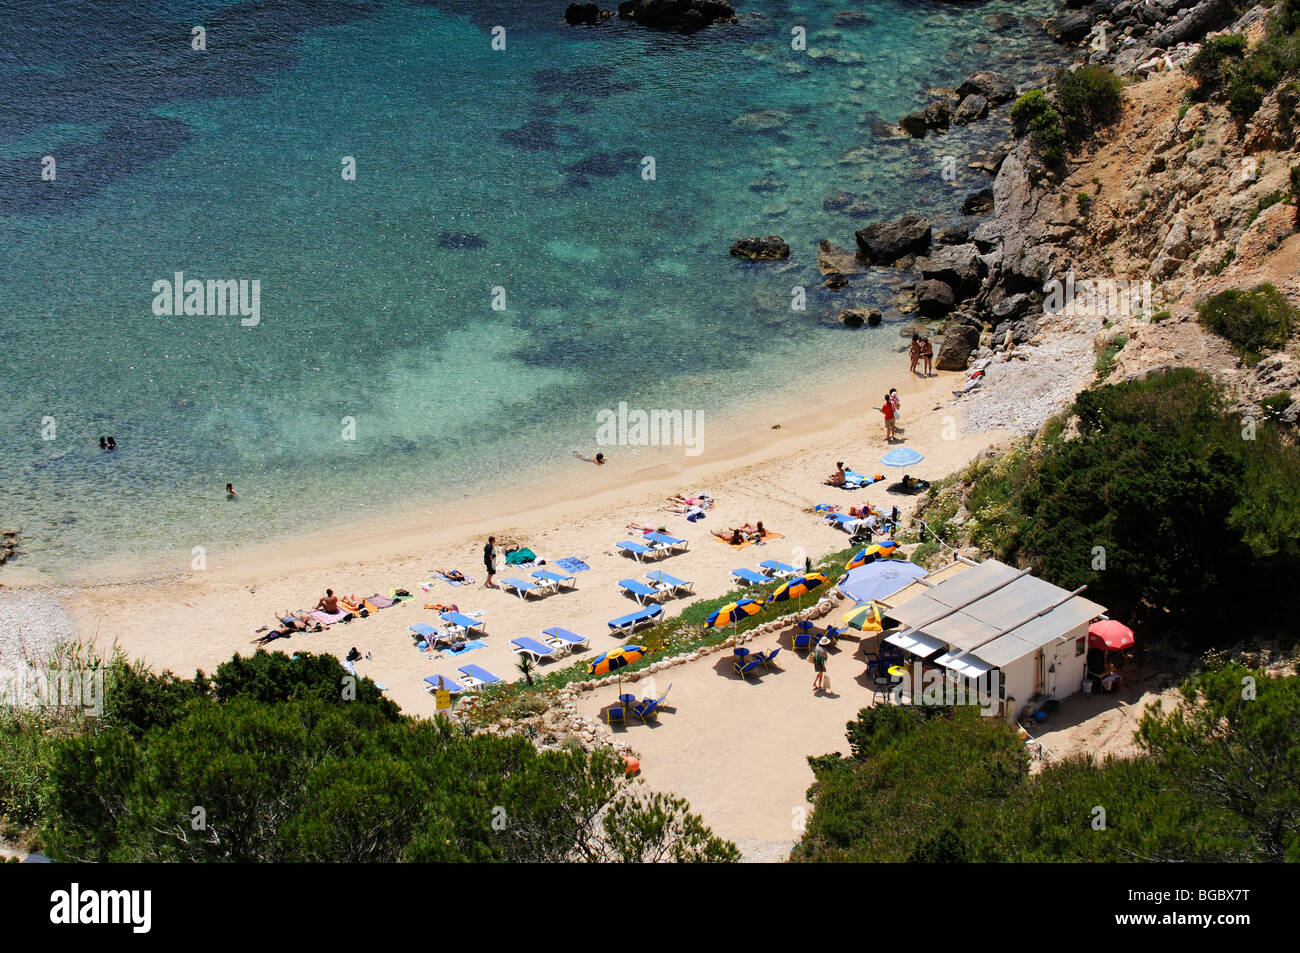 Beach, Cala d'en Serra, Portinatx, Ibiza, Pine Islands, Balearic Islands, Spain, Europe Stock Photo